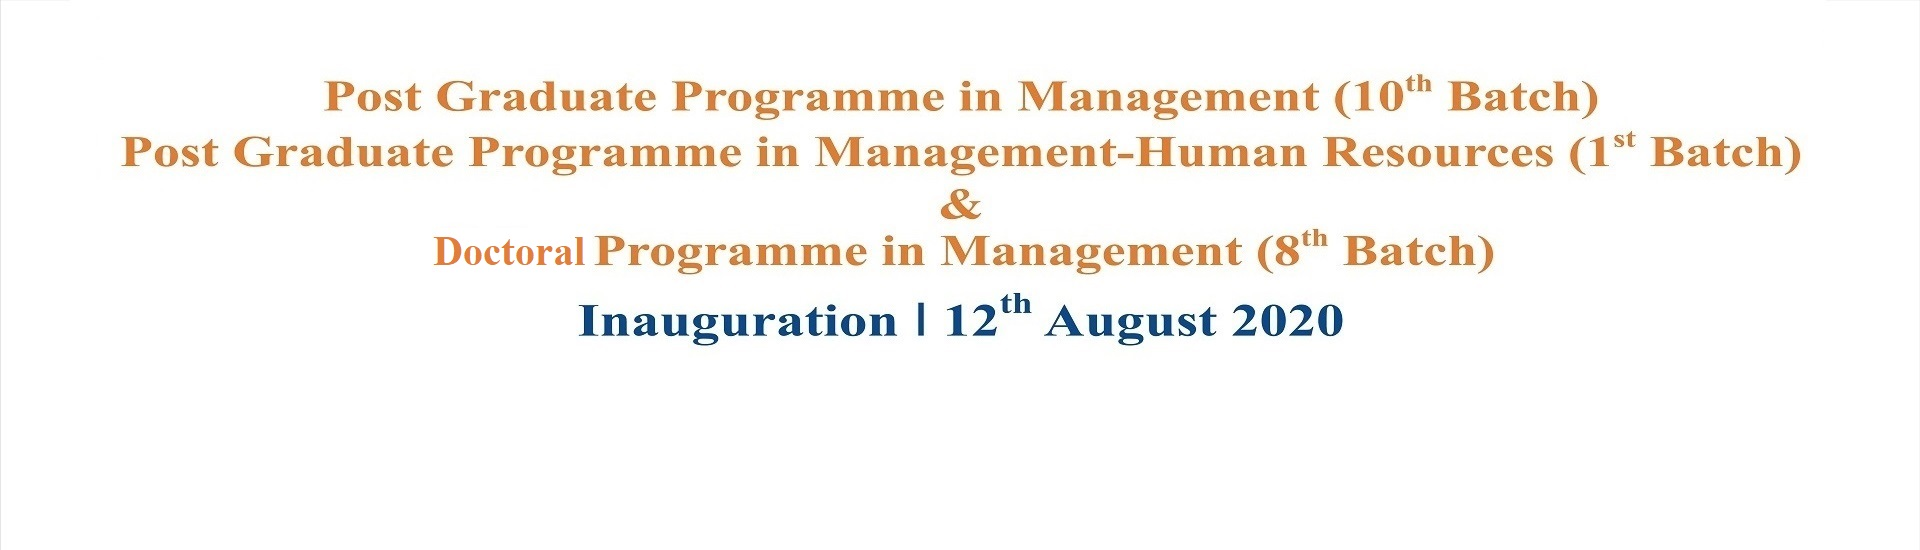 Inauguration of PGPM, PGPM-HR & DPM